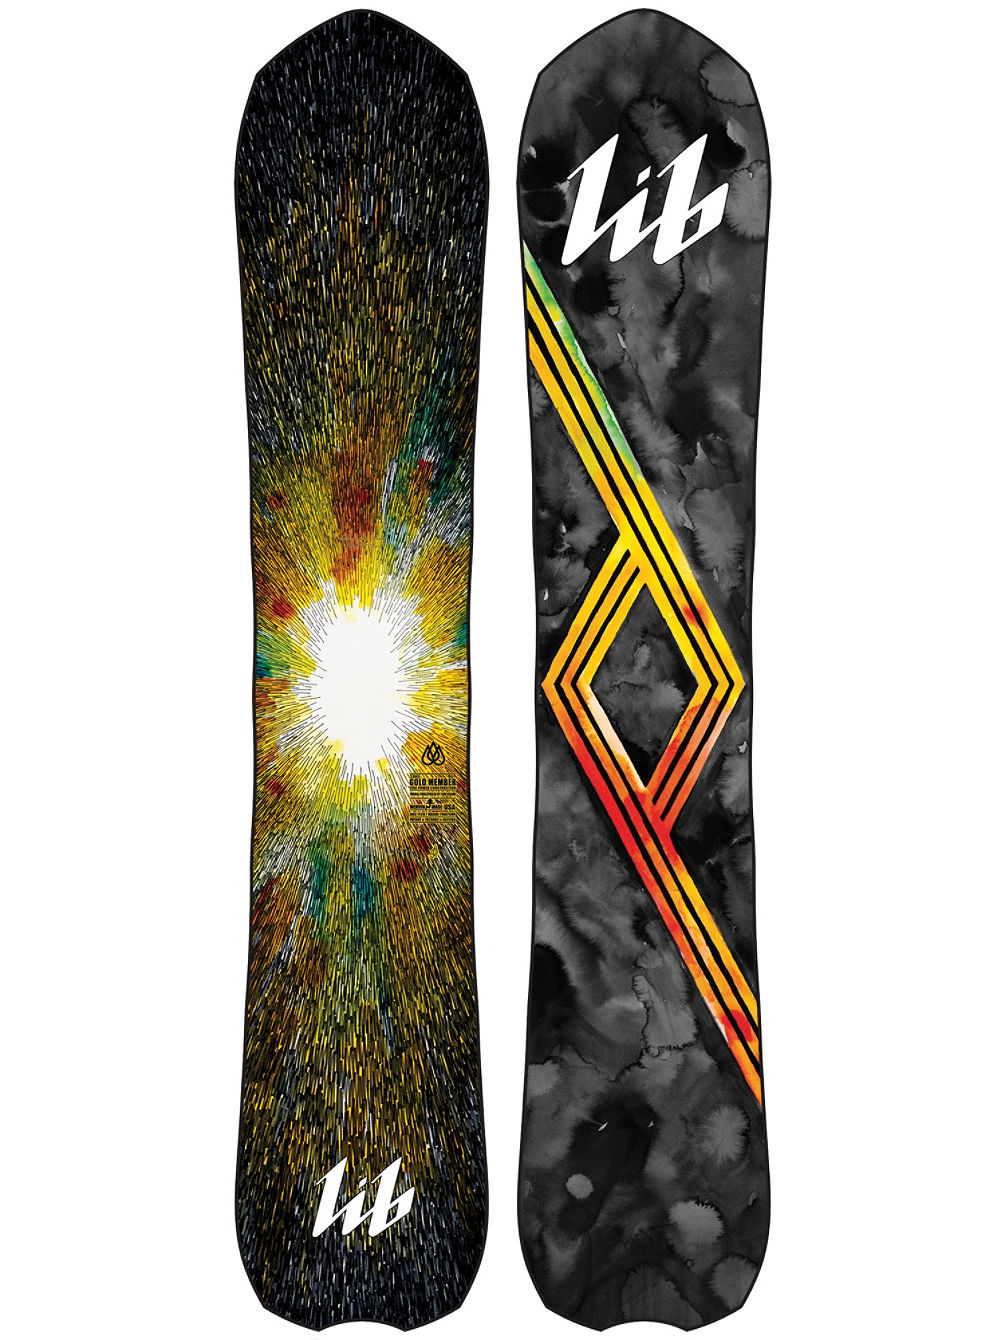 Travis Rice Goldmember FP C2X 157 2020 Snowboard